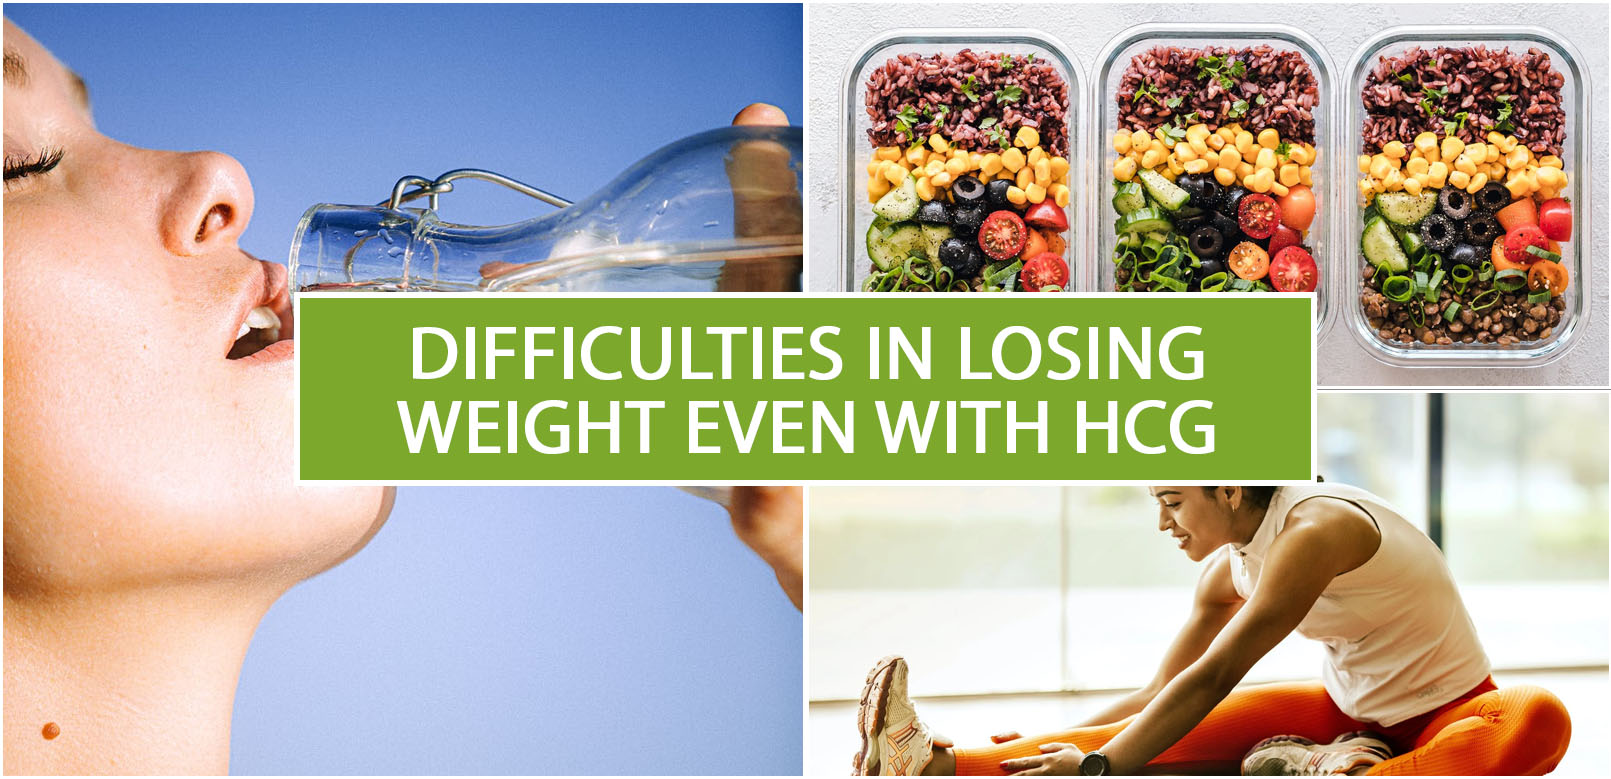 DIFFICULTIES IN LOSING WEIGHT EVEN WITH HCG